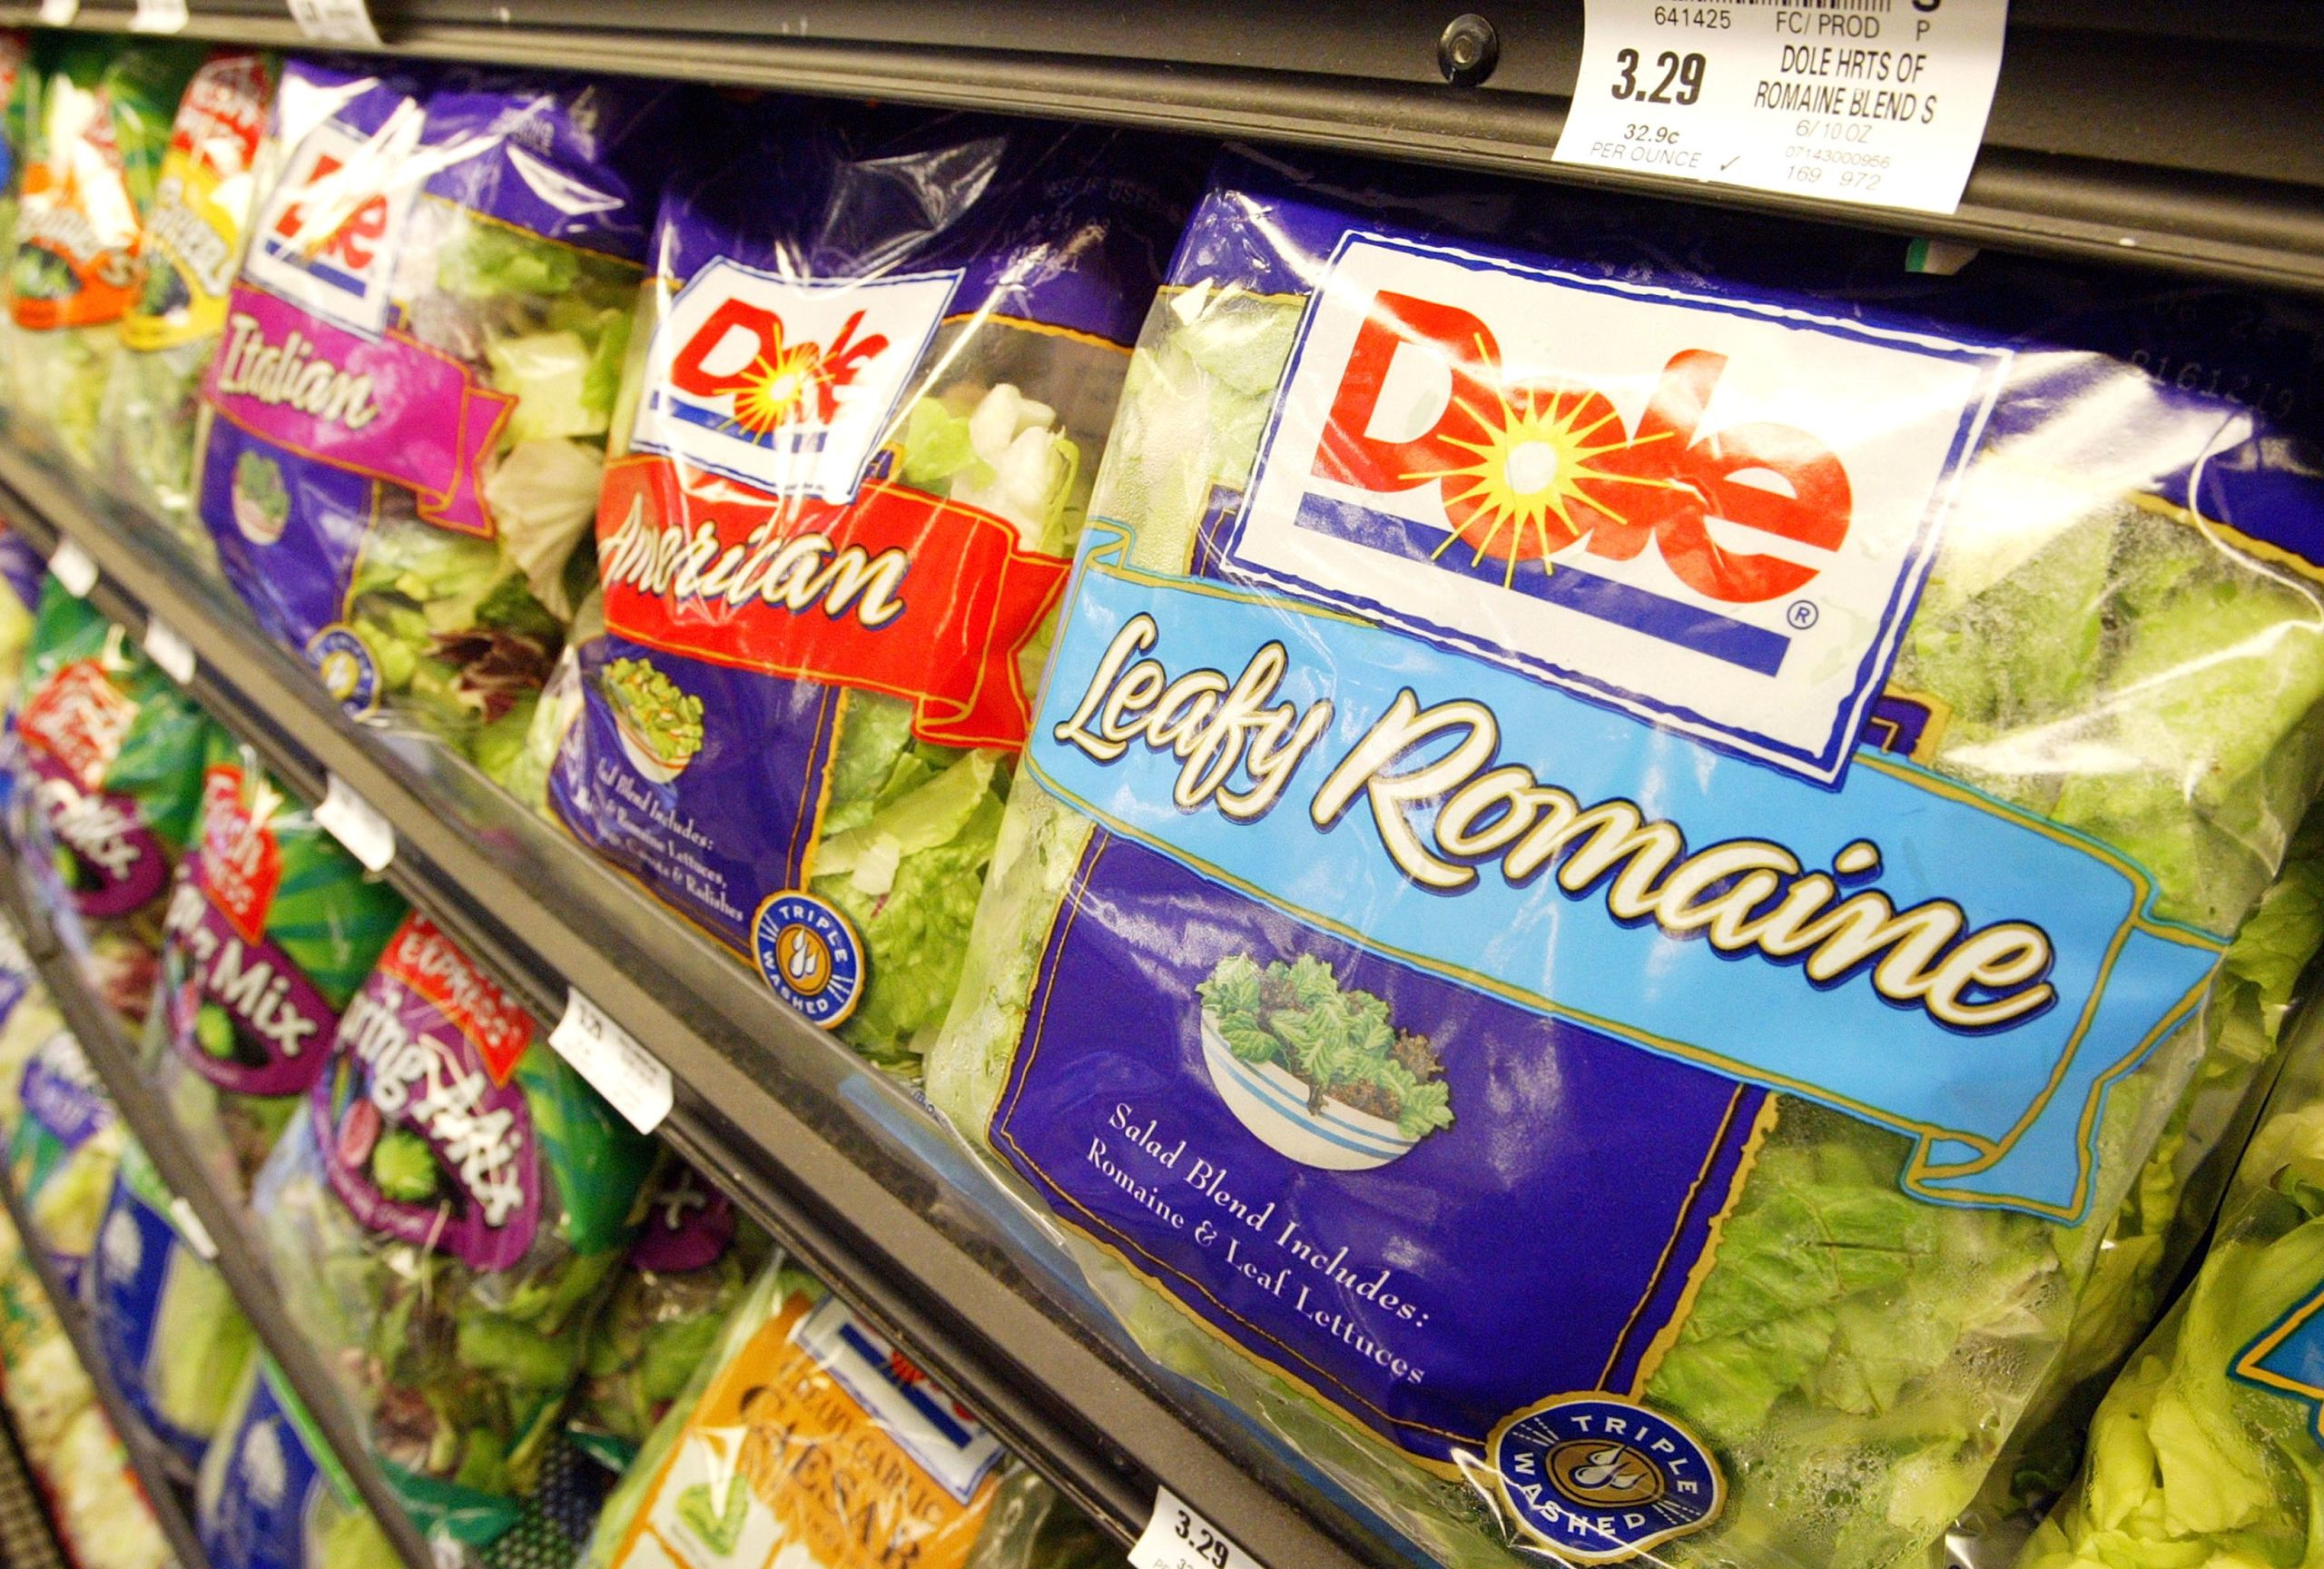 Dole Pre-Packaged Salads Recalled After Deadly Listeria Outbreak